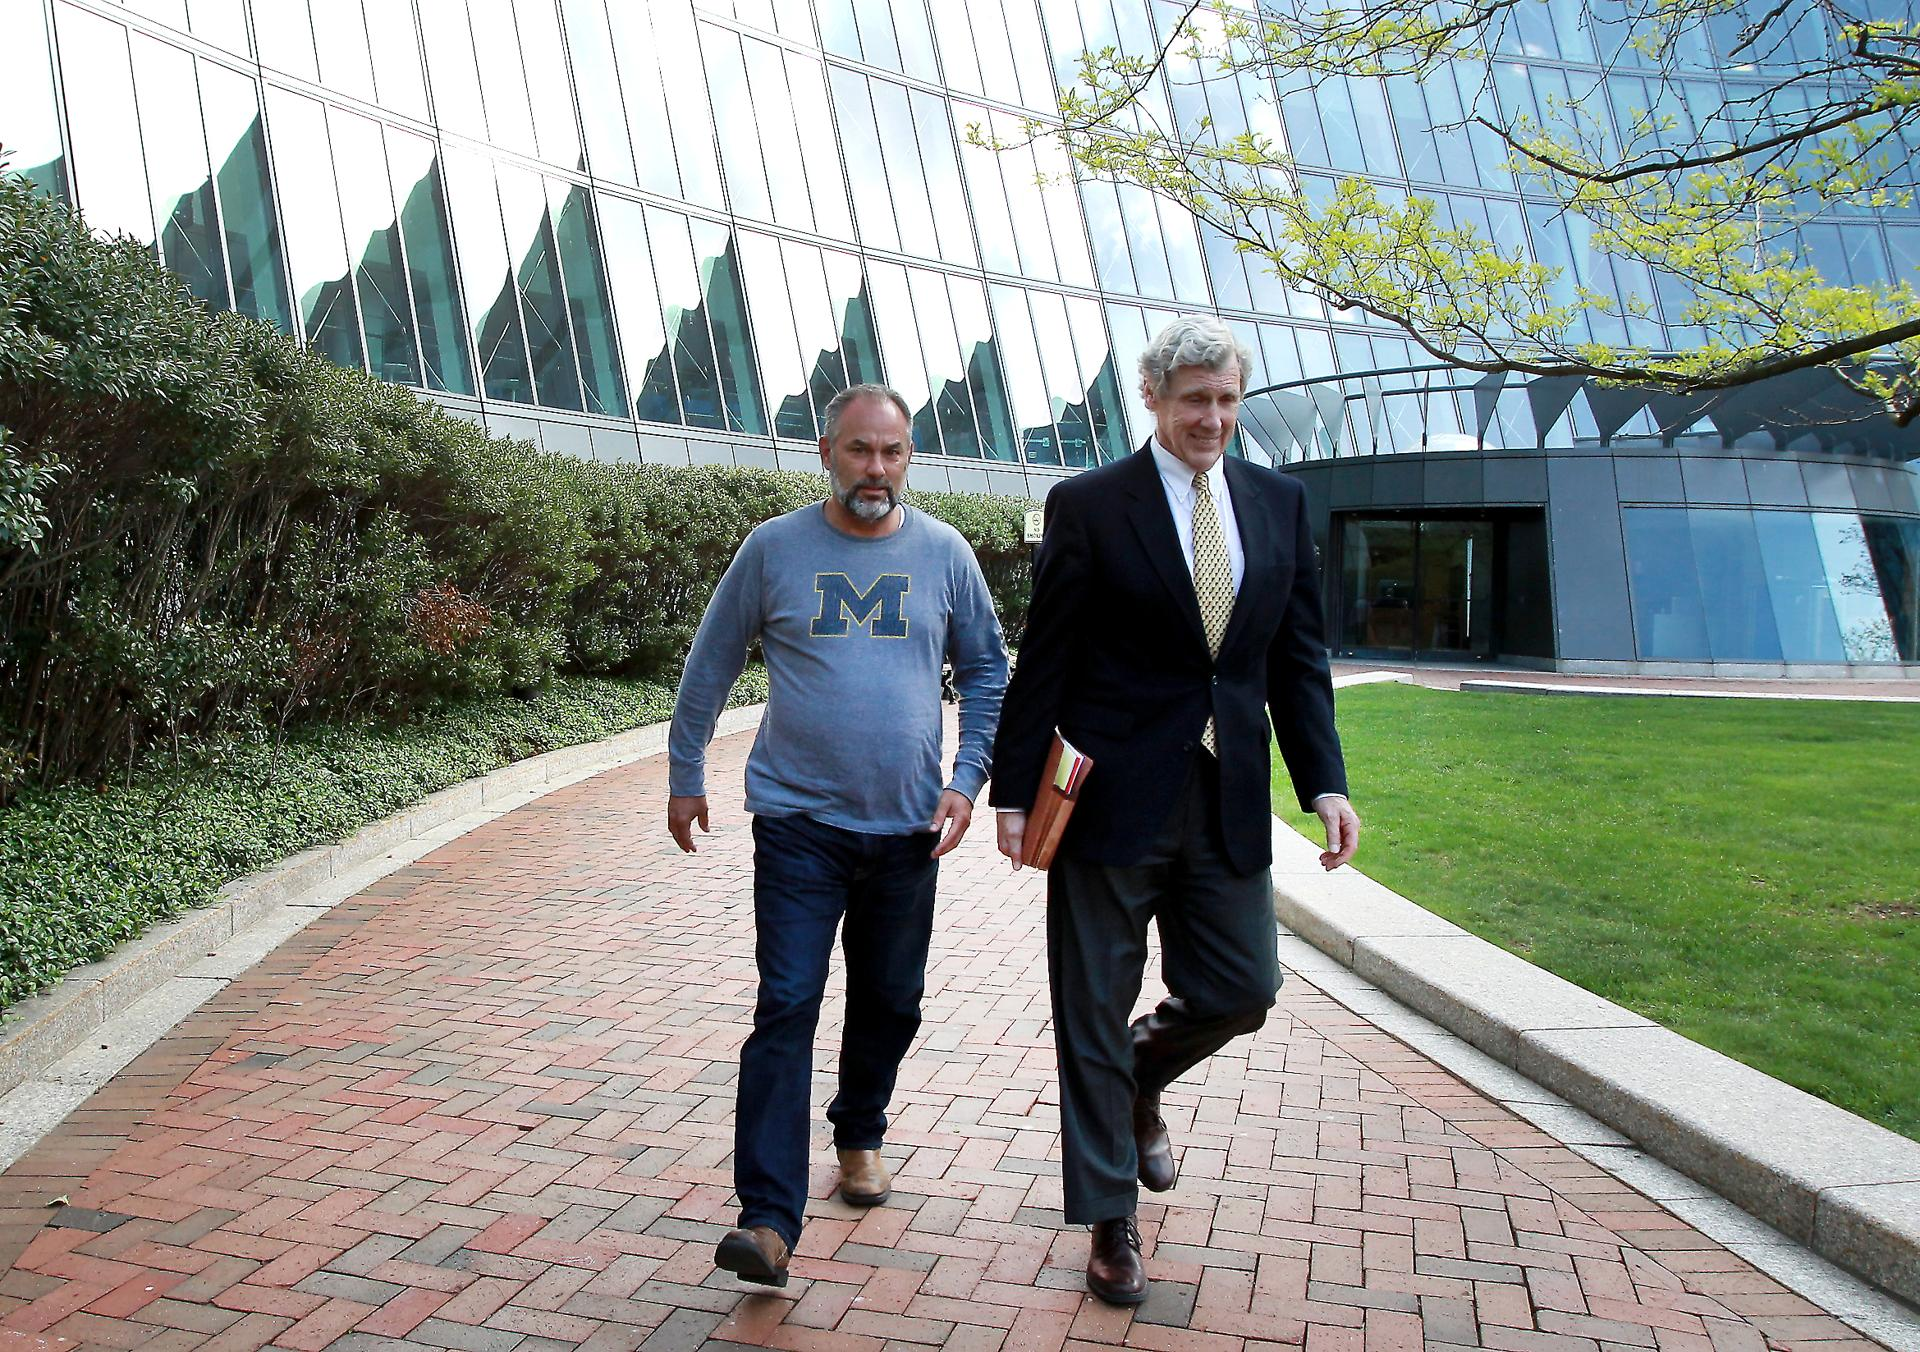 mcdonnell college thesis The controversy over bob mcdonnell's 1989 graduate thesis has put the gop candidate on the defense but democratic voter fatigue may keep his rival from getting ahead.